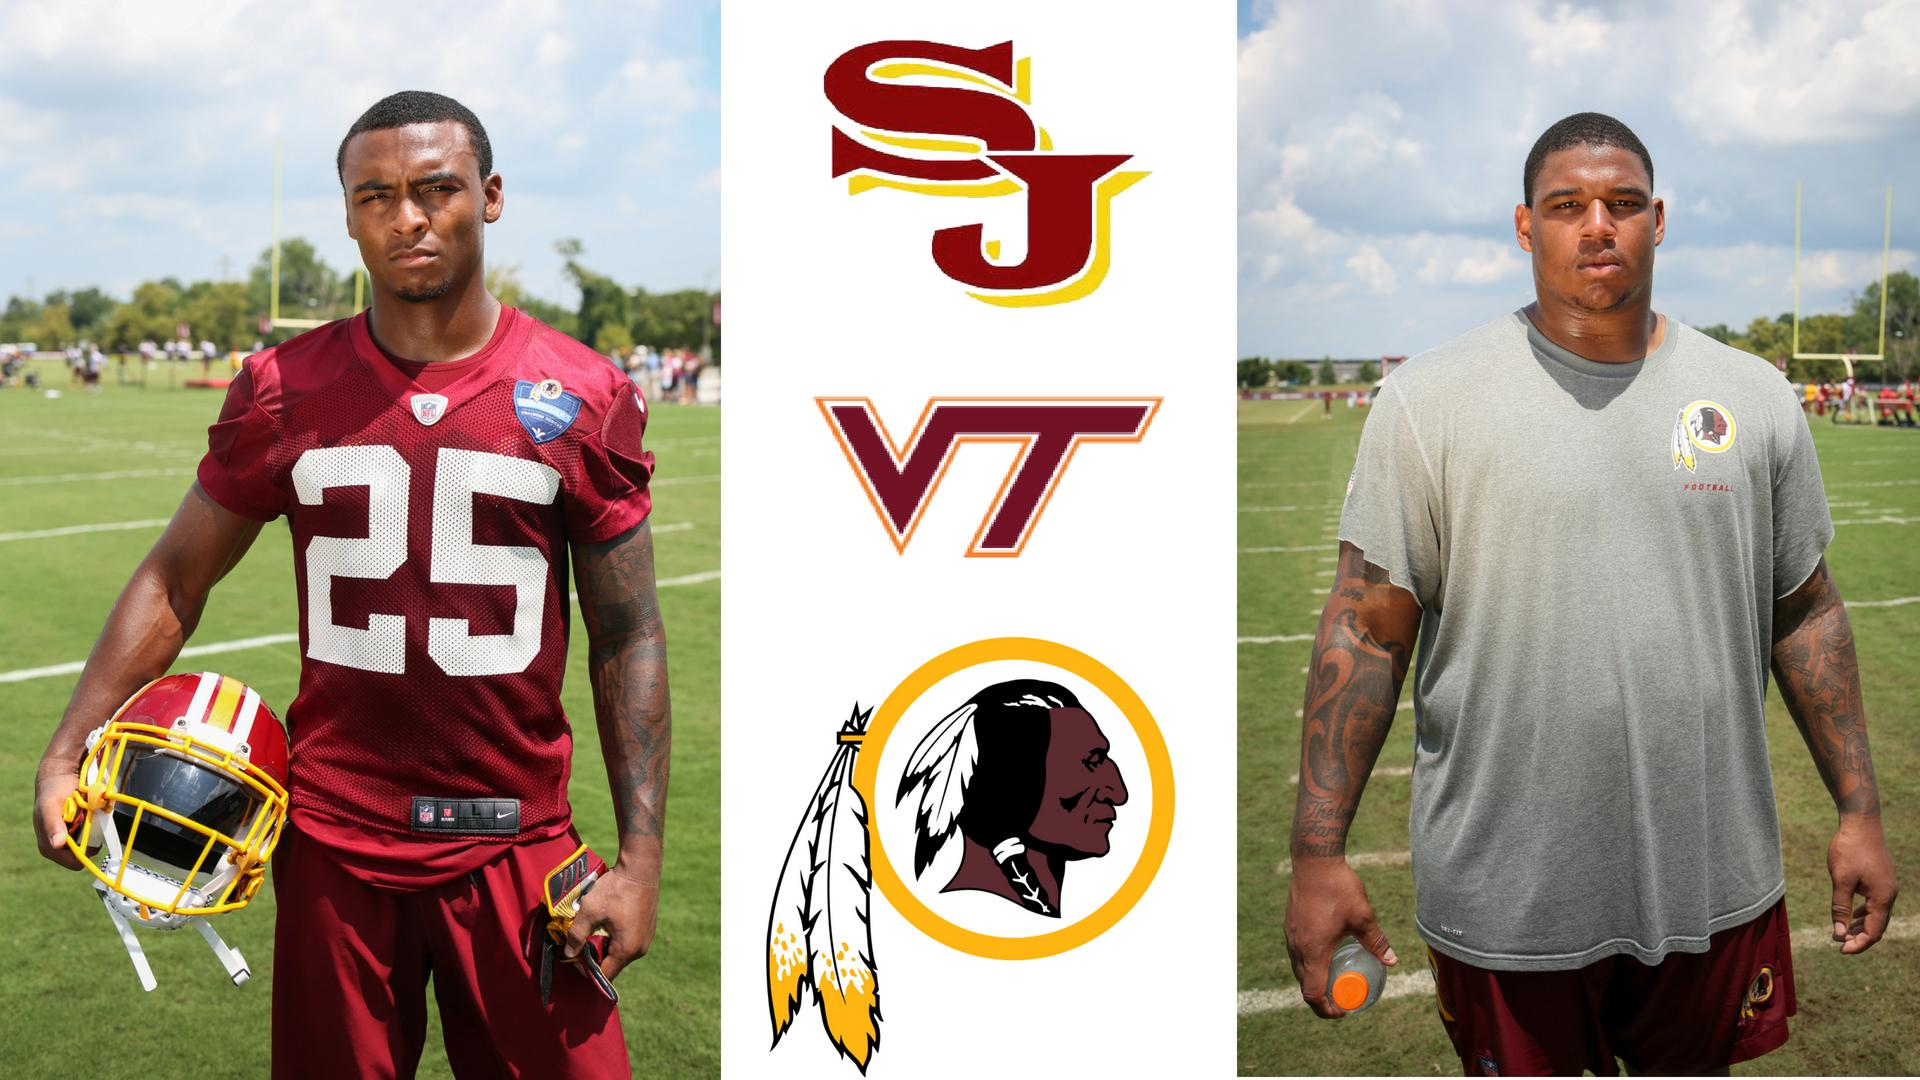 21-year-old Tim Settle and 22-year-old Greg Stroman grew up together in Northern Virginia, played high school football together at Stonewall Jackson and went on to be teammates for three years at Virginia Tech. Now, against all odds, the buddies have been drafted to play for their home team, the Washington Redskins. (Image: Amanda Andrade-Rhoades/ DC Refined)